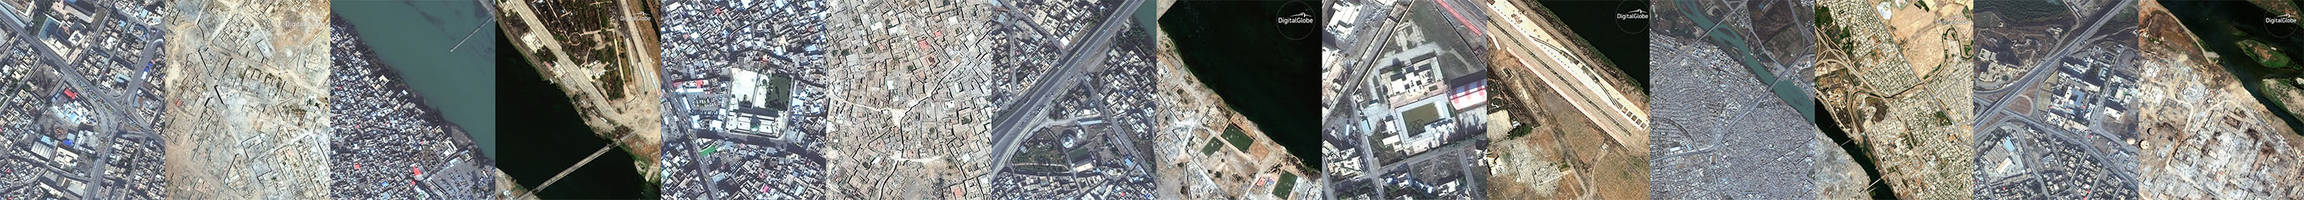 shocking before and after satellite photos from mosul